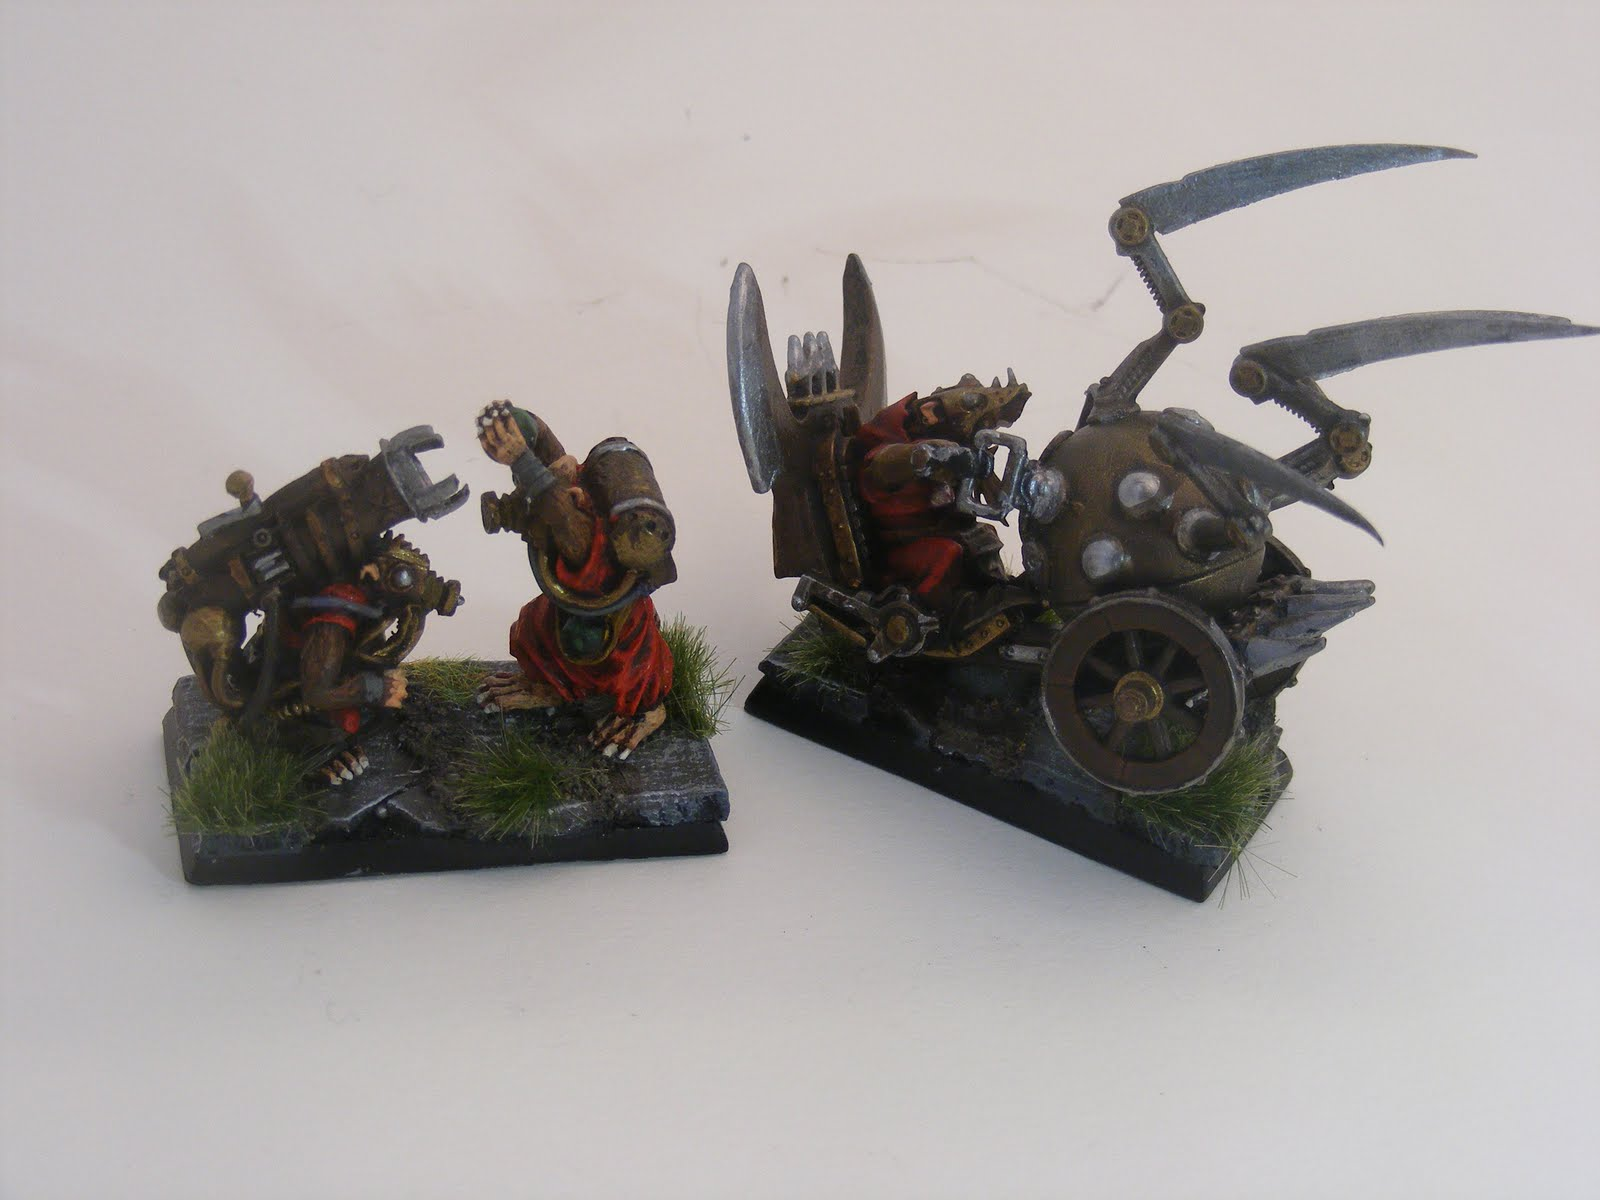 Skaven 7th edition